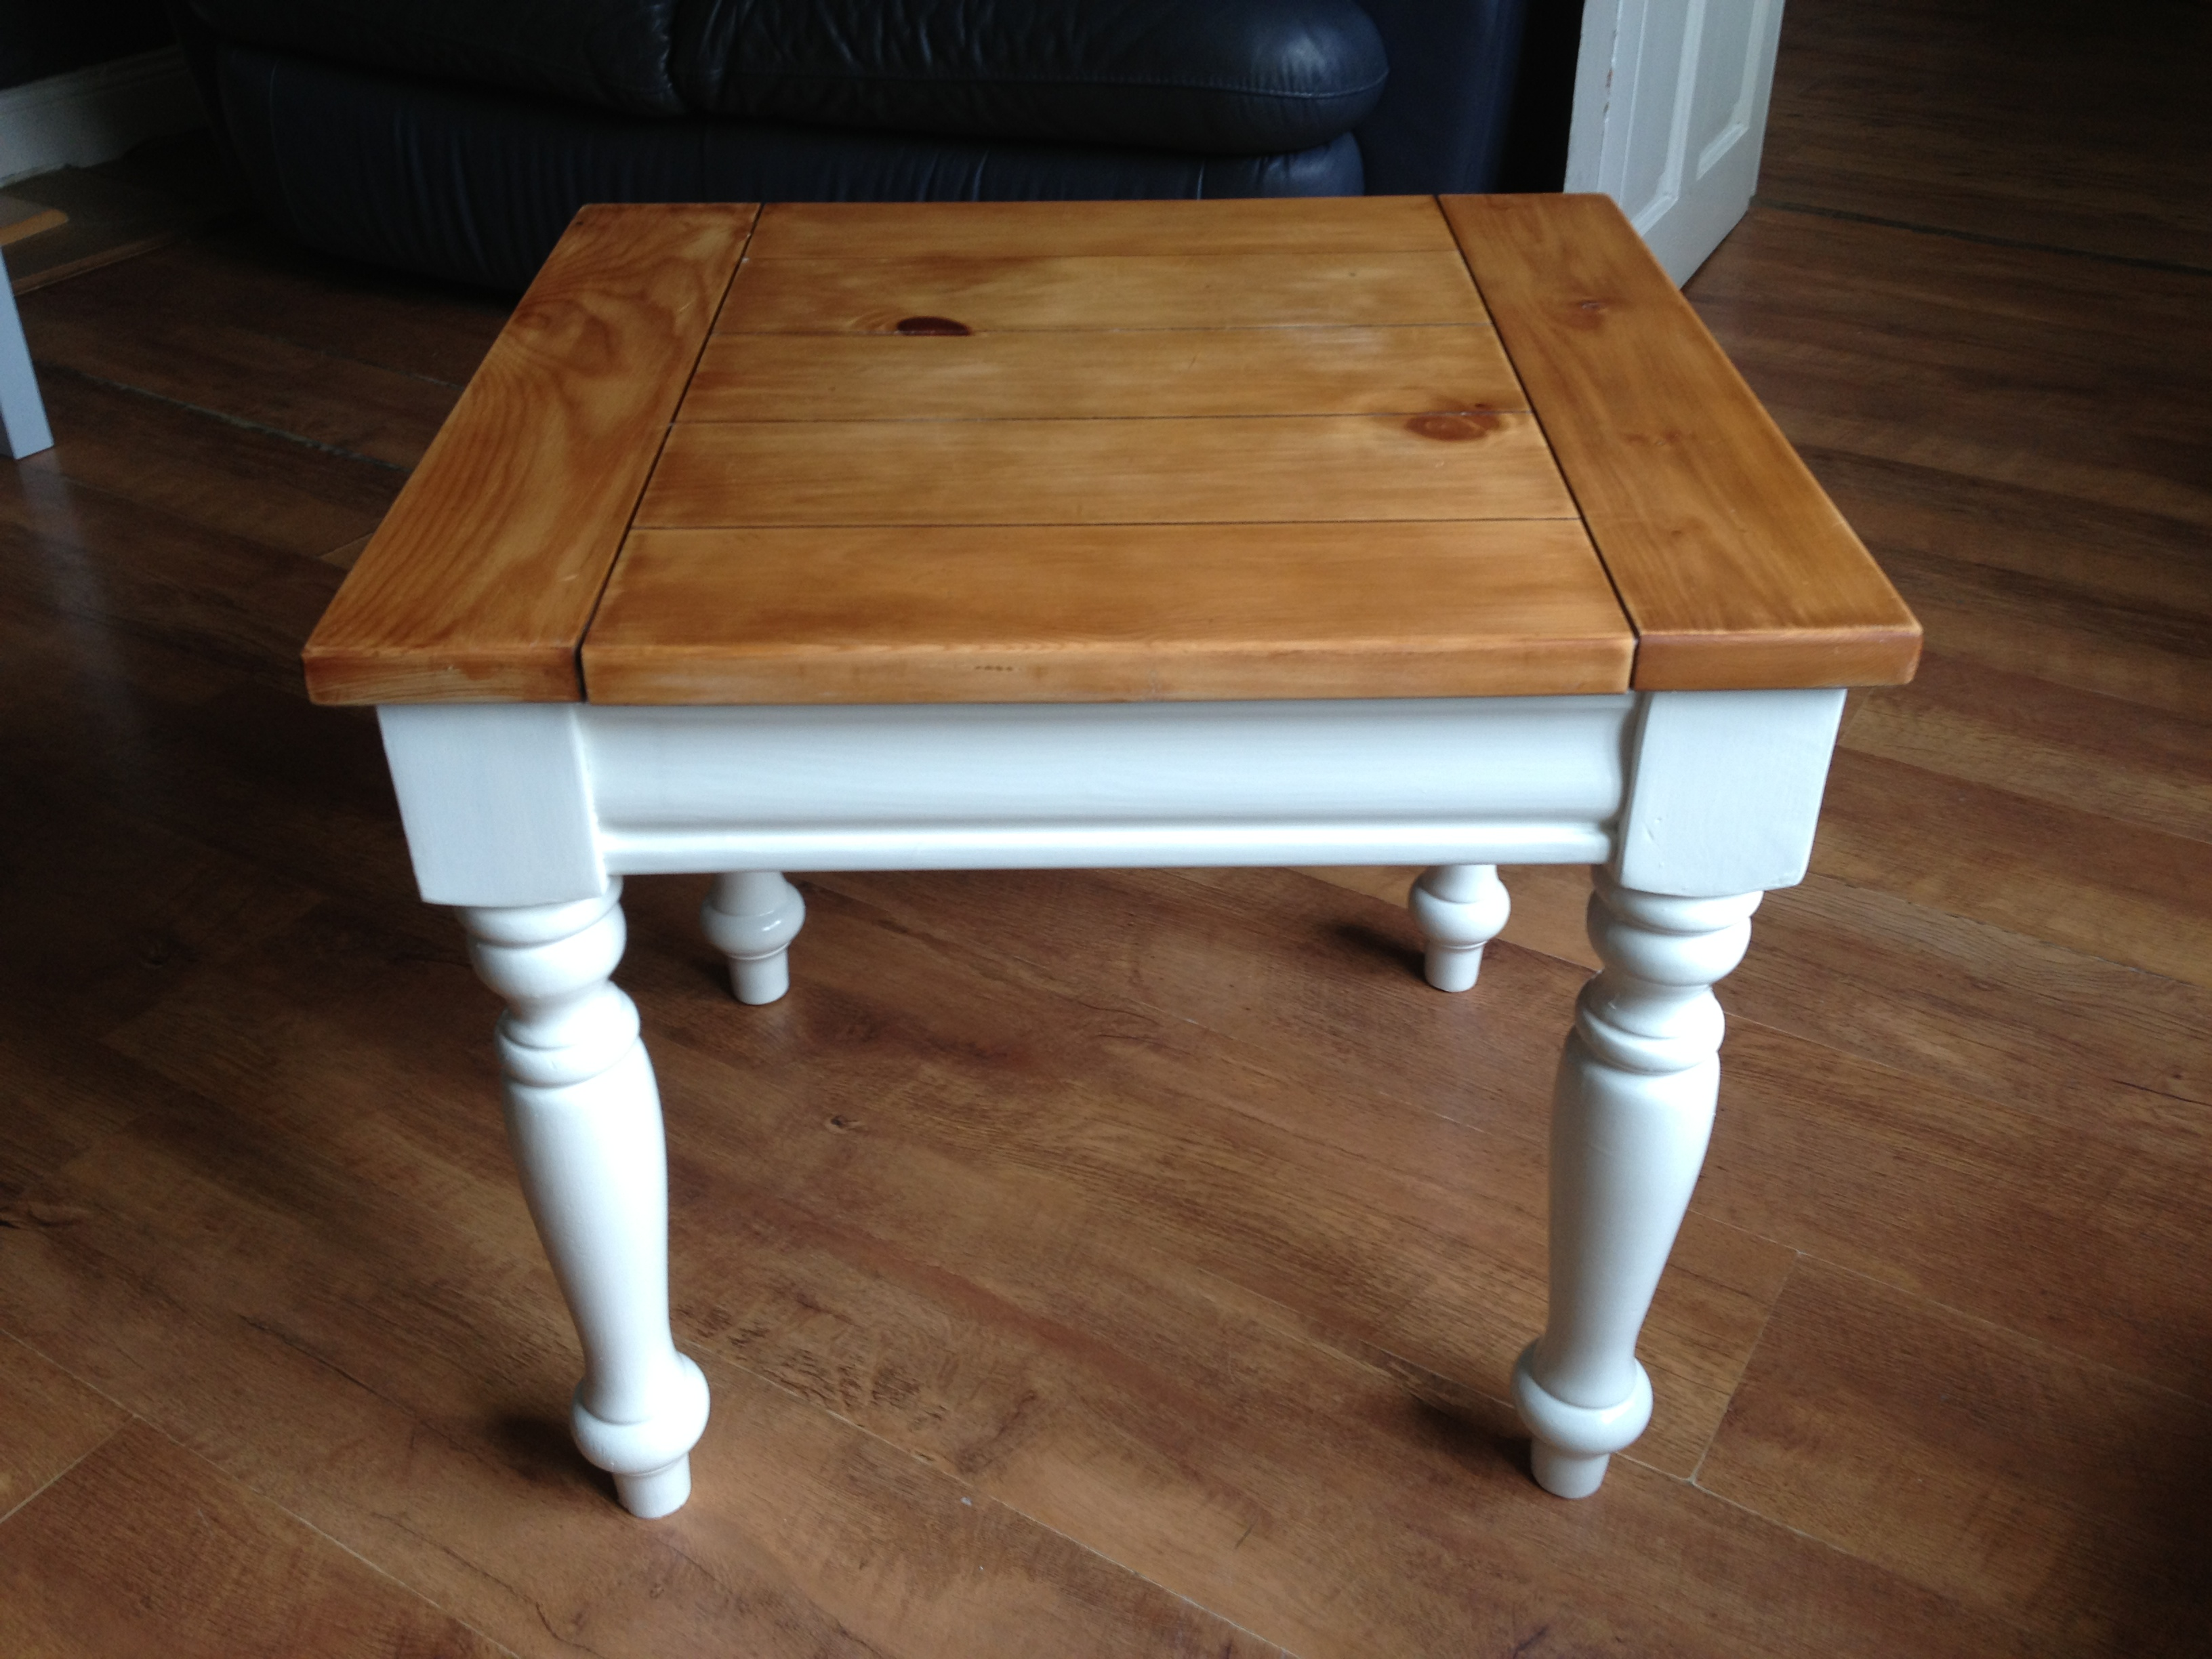 Second Hand Furniture Online